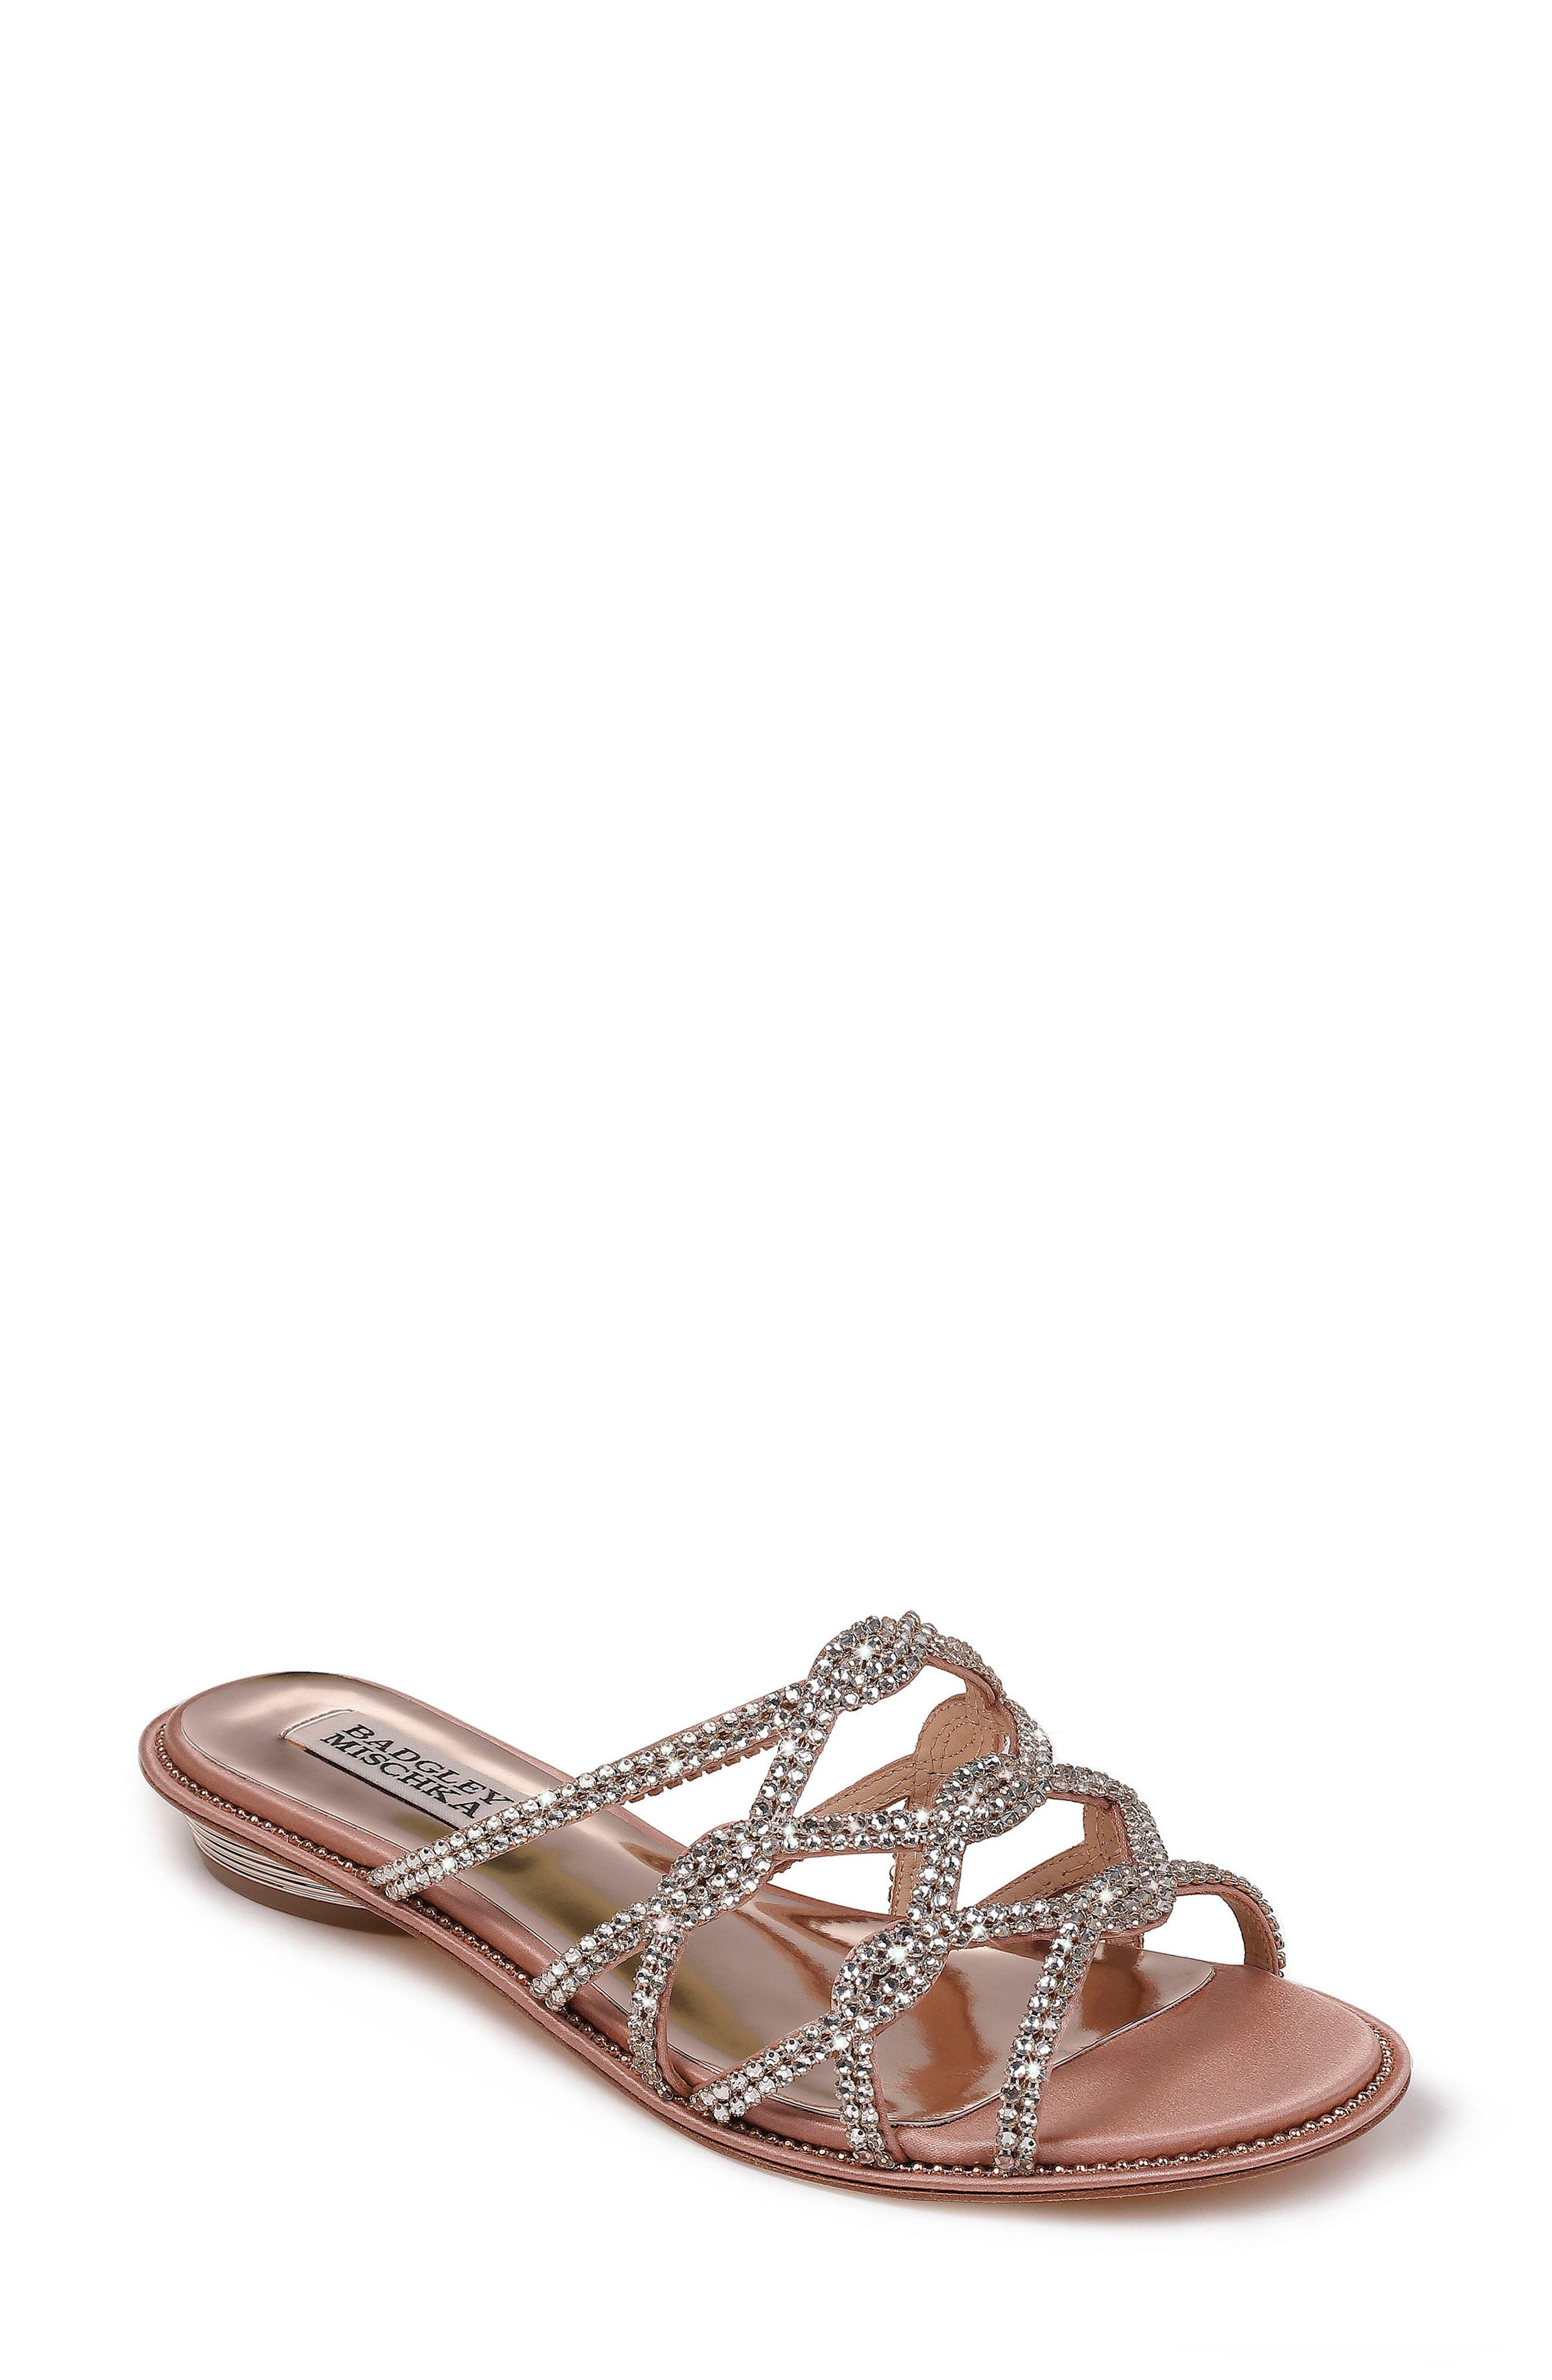 Sofie Strappy Sandal,                             Main thumbnail 1, color,                             DARK PINK SATIN